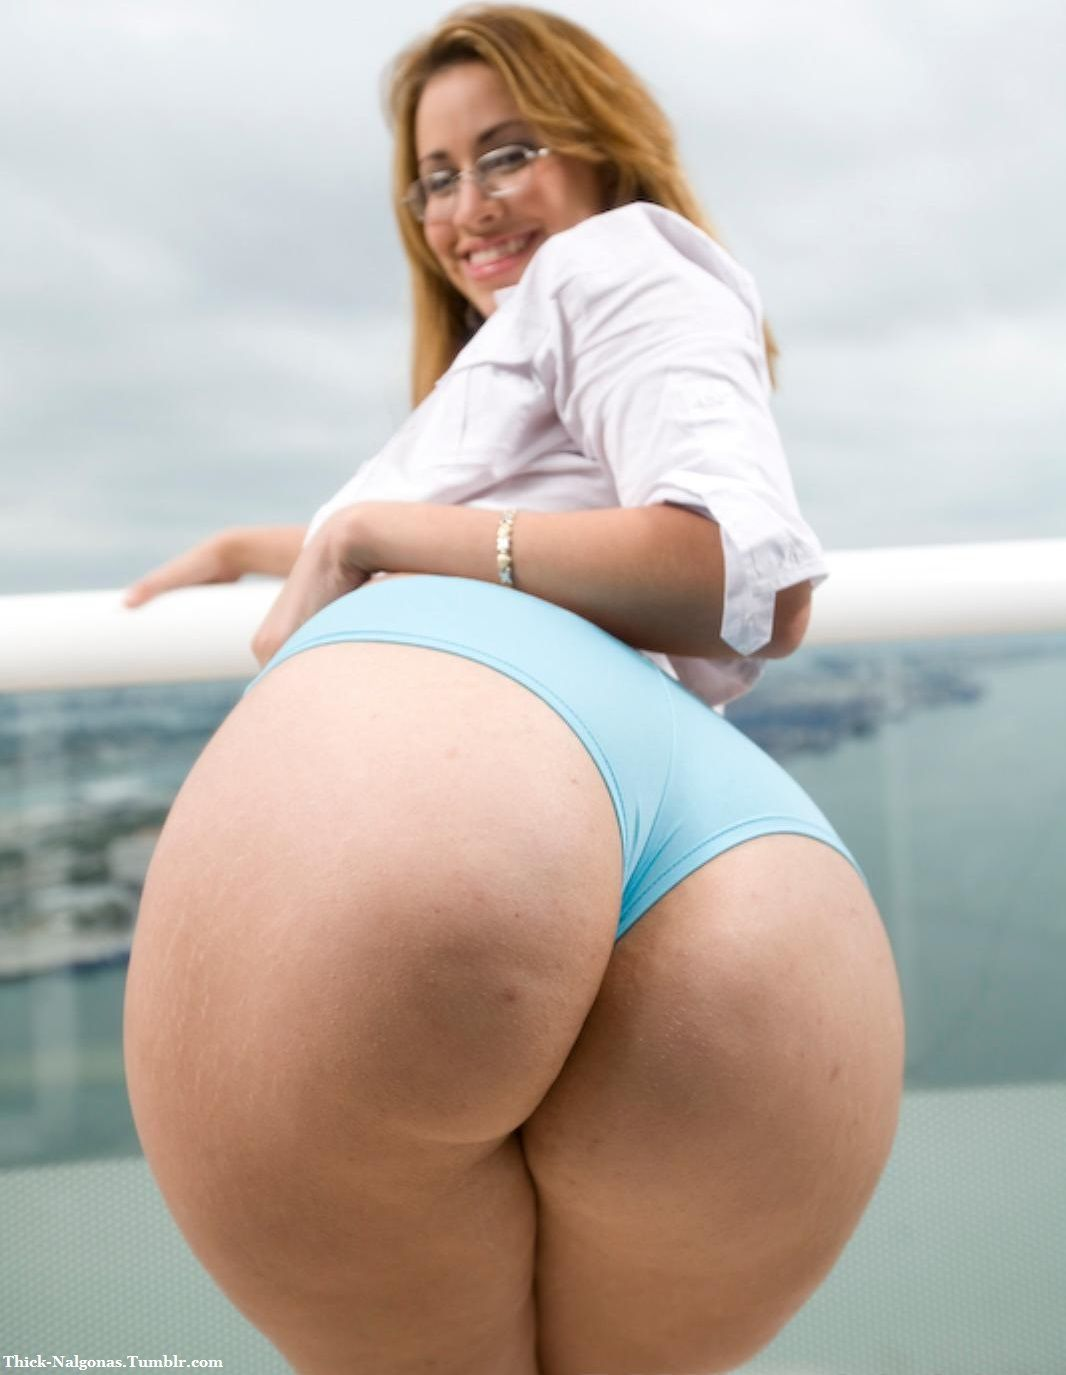 Bbw solo big toy insertion | Adult images)